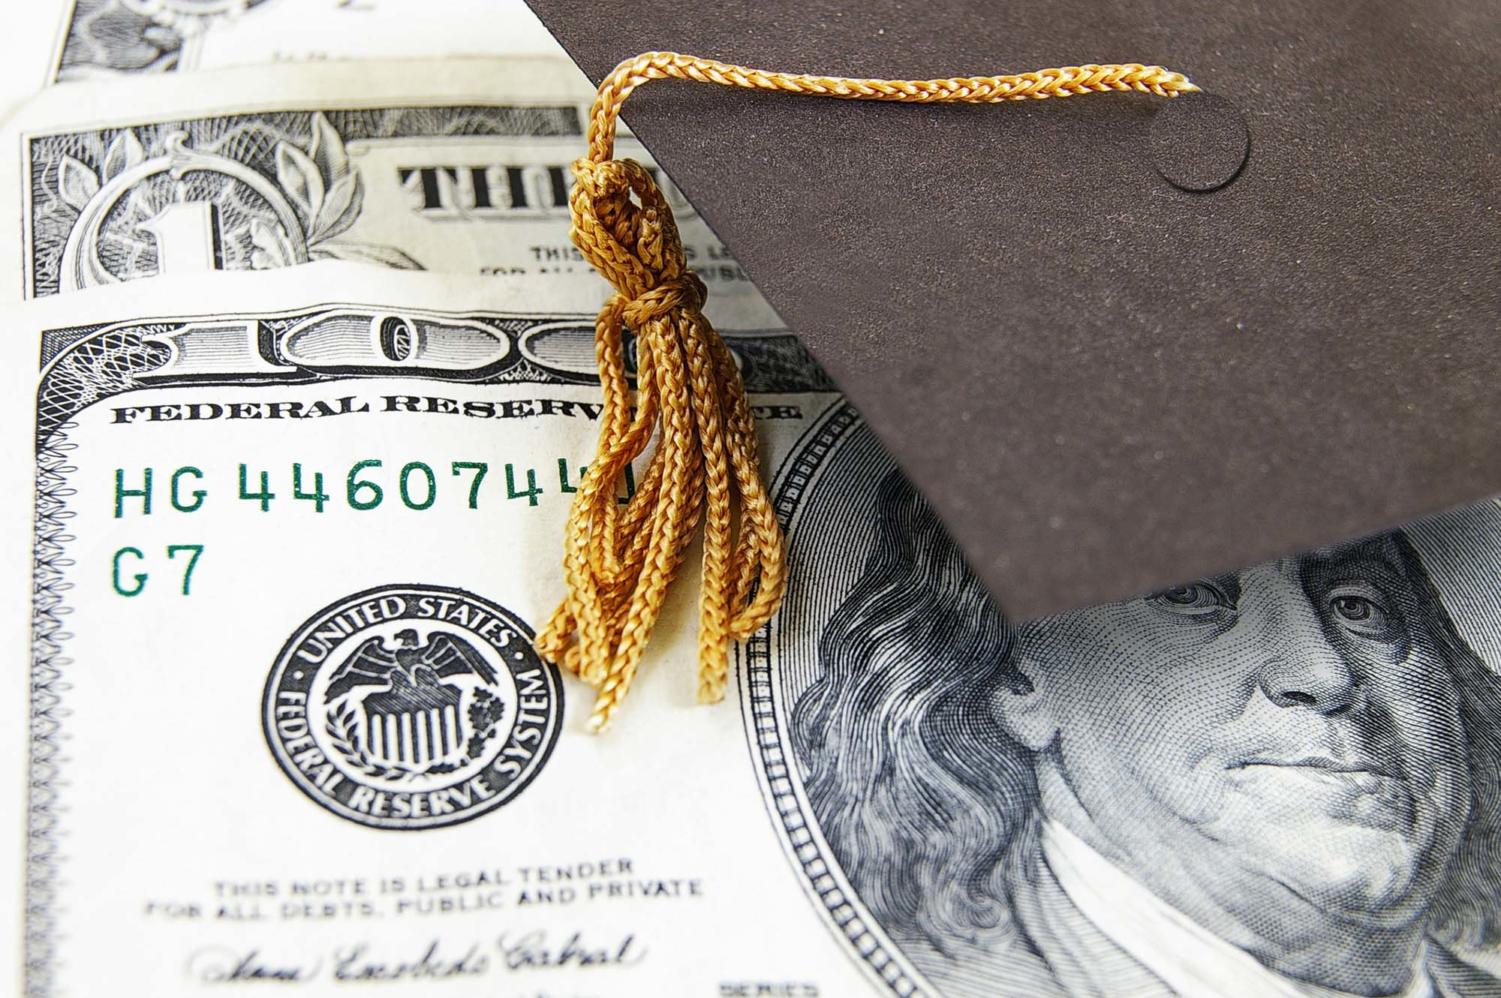 A new bill introduced in the House of Representatives Tuesday would increase Pell Grants, create a fund of $500 million for states to identify and prioritize colleges with high numbers of minority and low-income students and simplify student loan repayment plans.